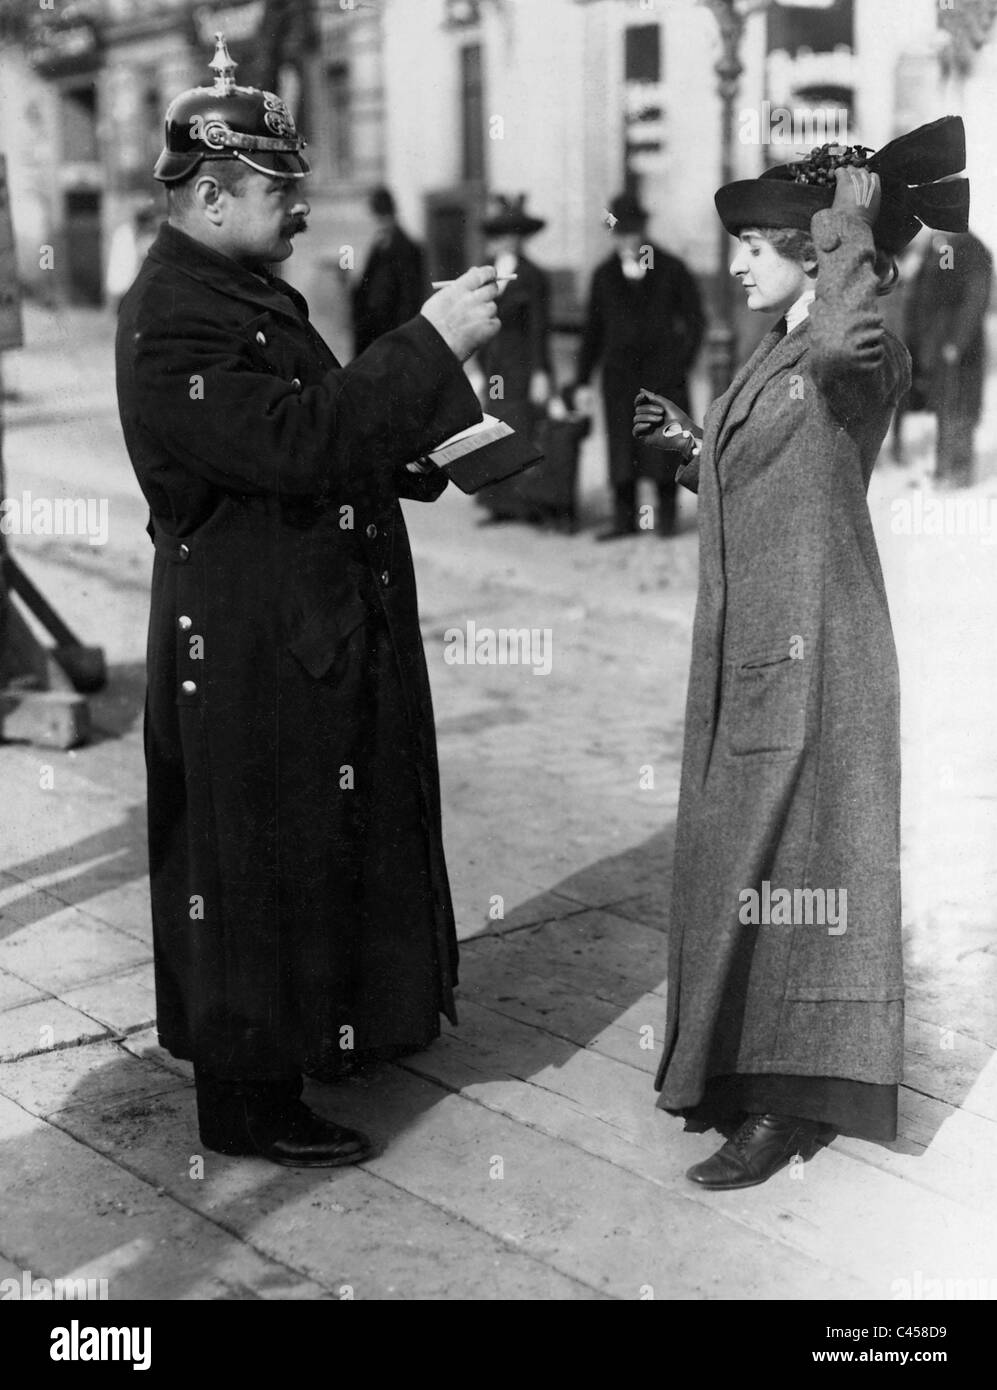 Police cautions a woman, 1913 - Stock Image